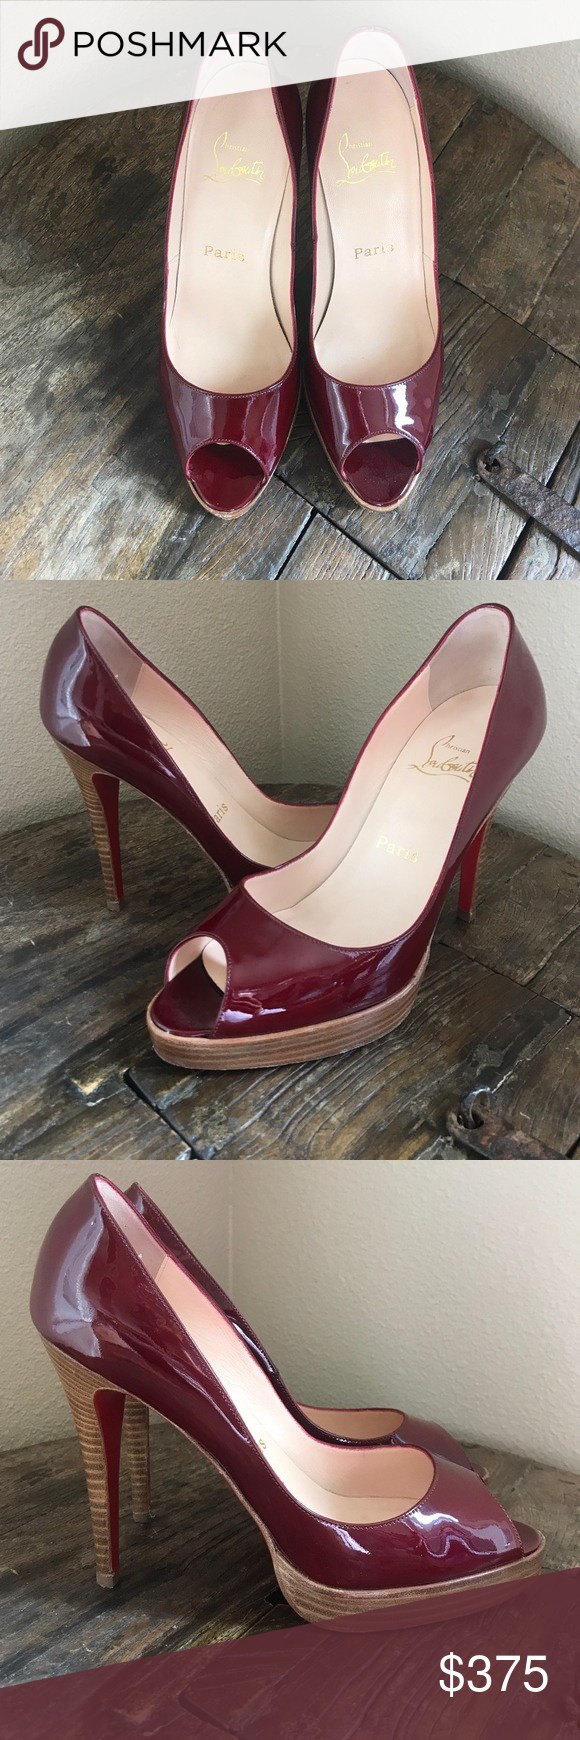 5f625d1cef9 AUTHENTIC CHRISTIAN LOUBOUTIN RED BOTTOM 👠 HOT Christian Louboutin peep 👀  toe RED patent leather